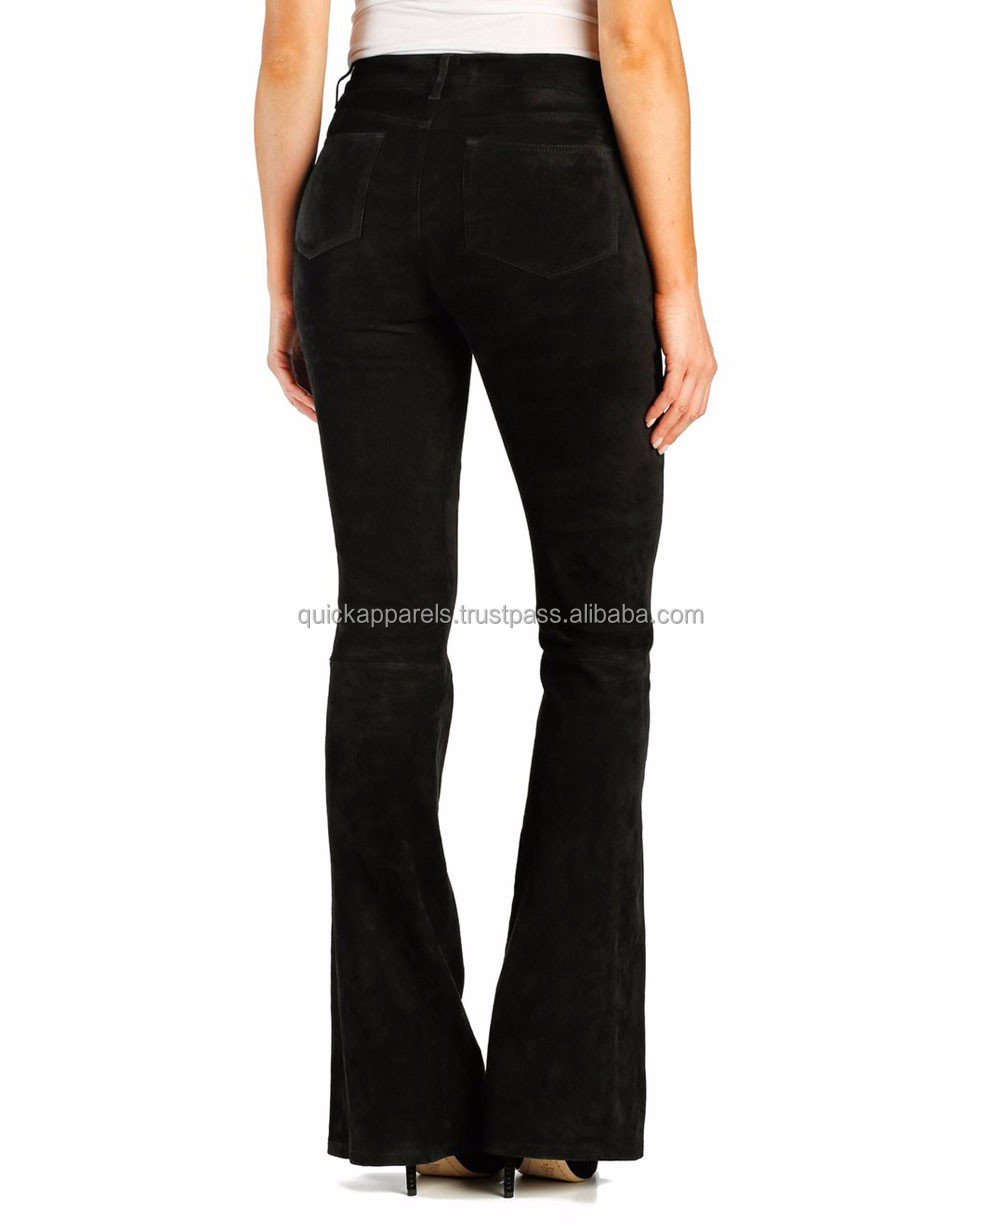 OEM service women Summer sports short pants, classic cool man cargo pants;leather trousers